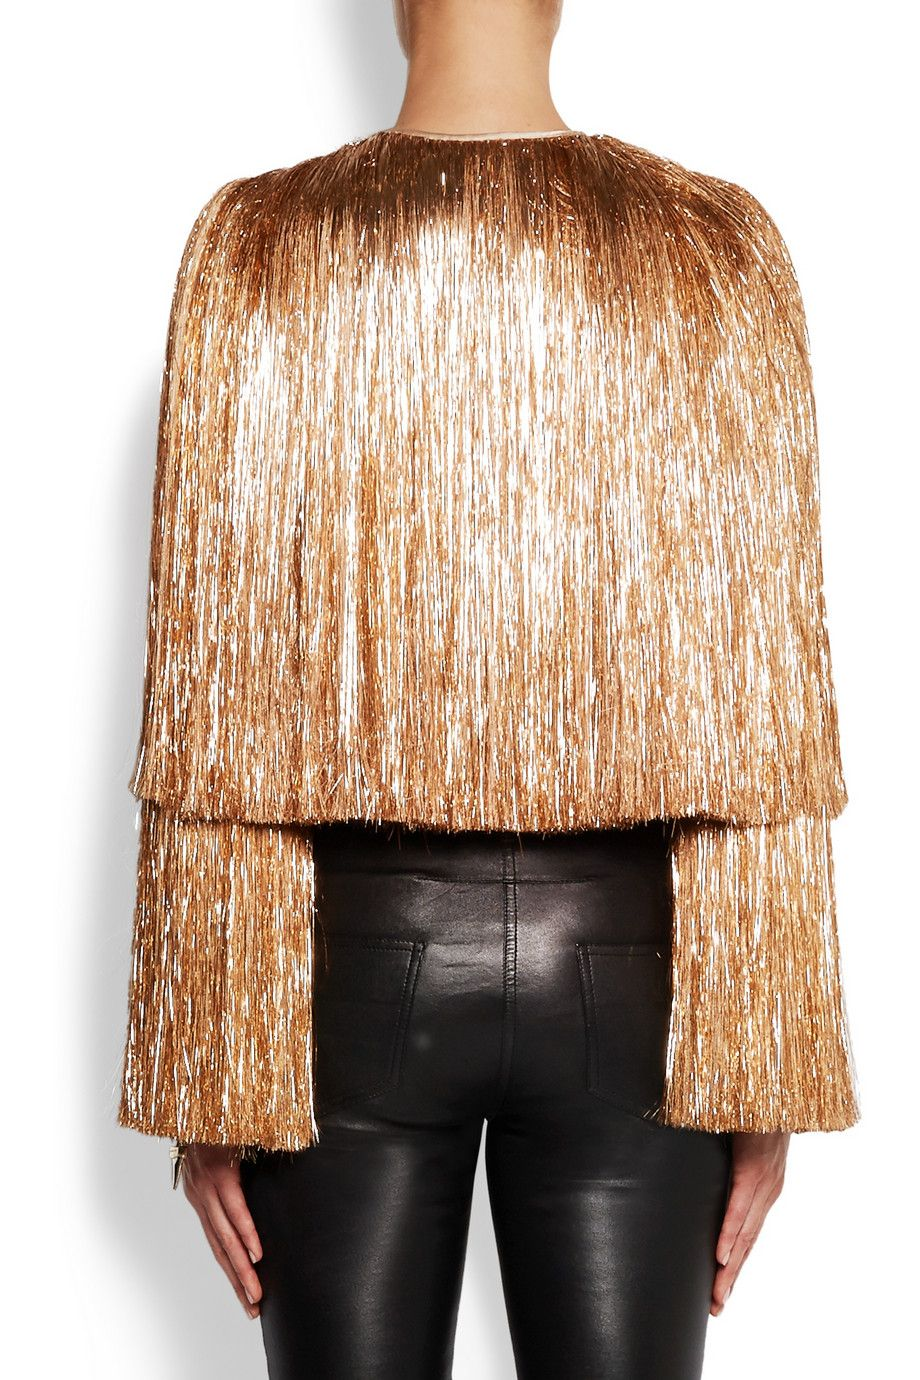 Givenchy Fringed jacket in gold silk-satin NET-A-PORTER.COM